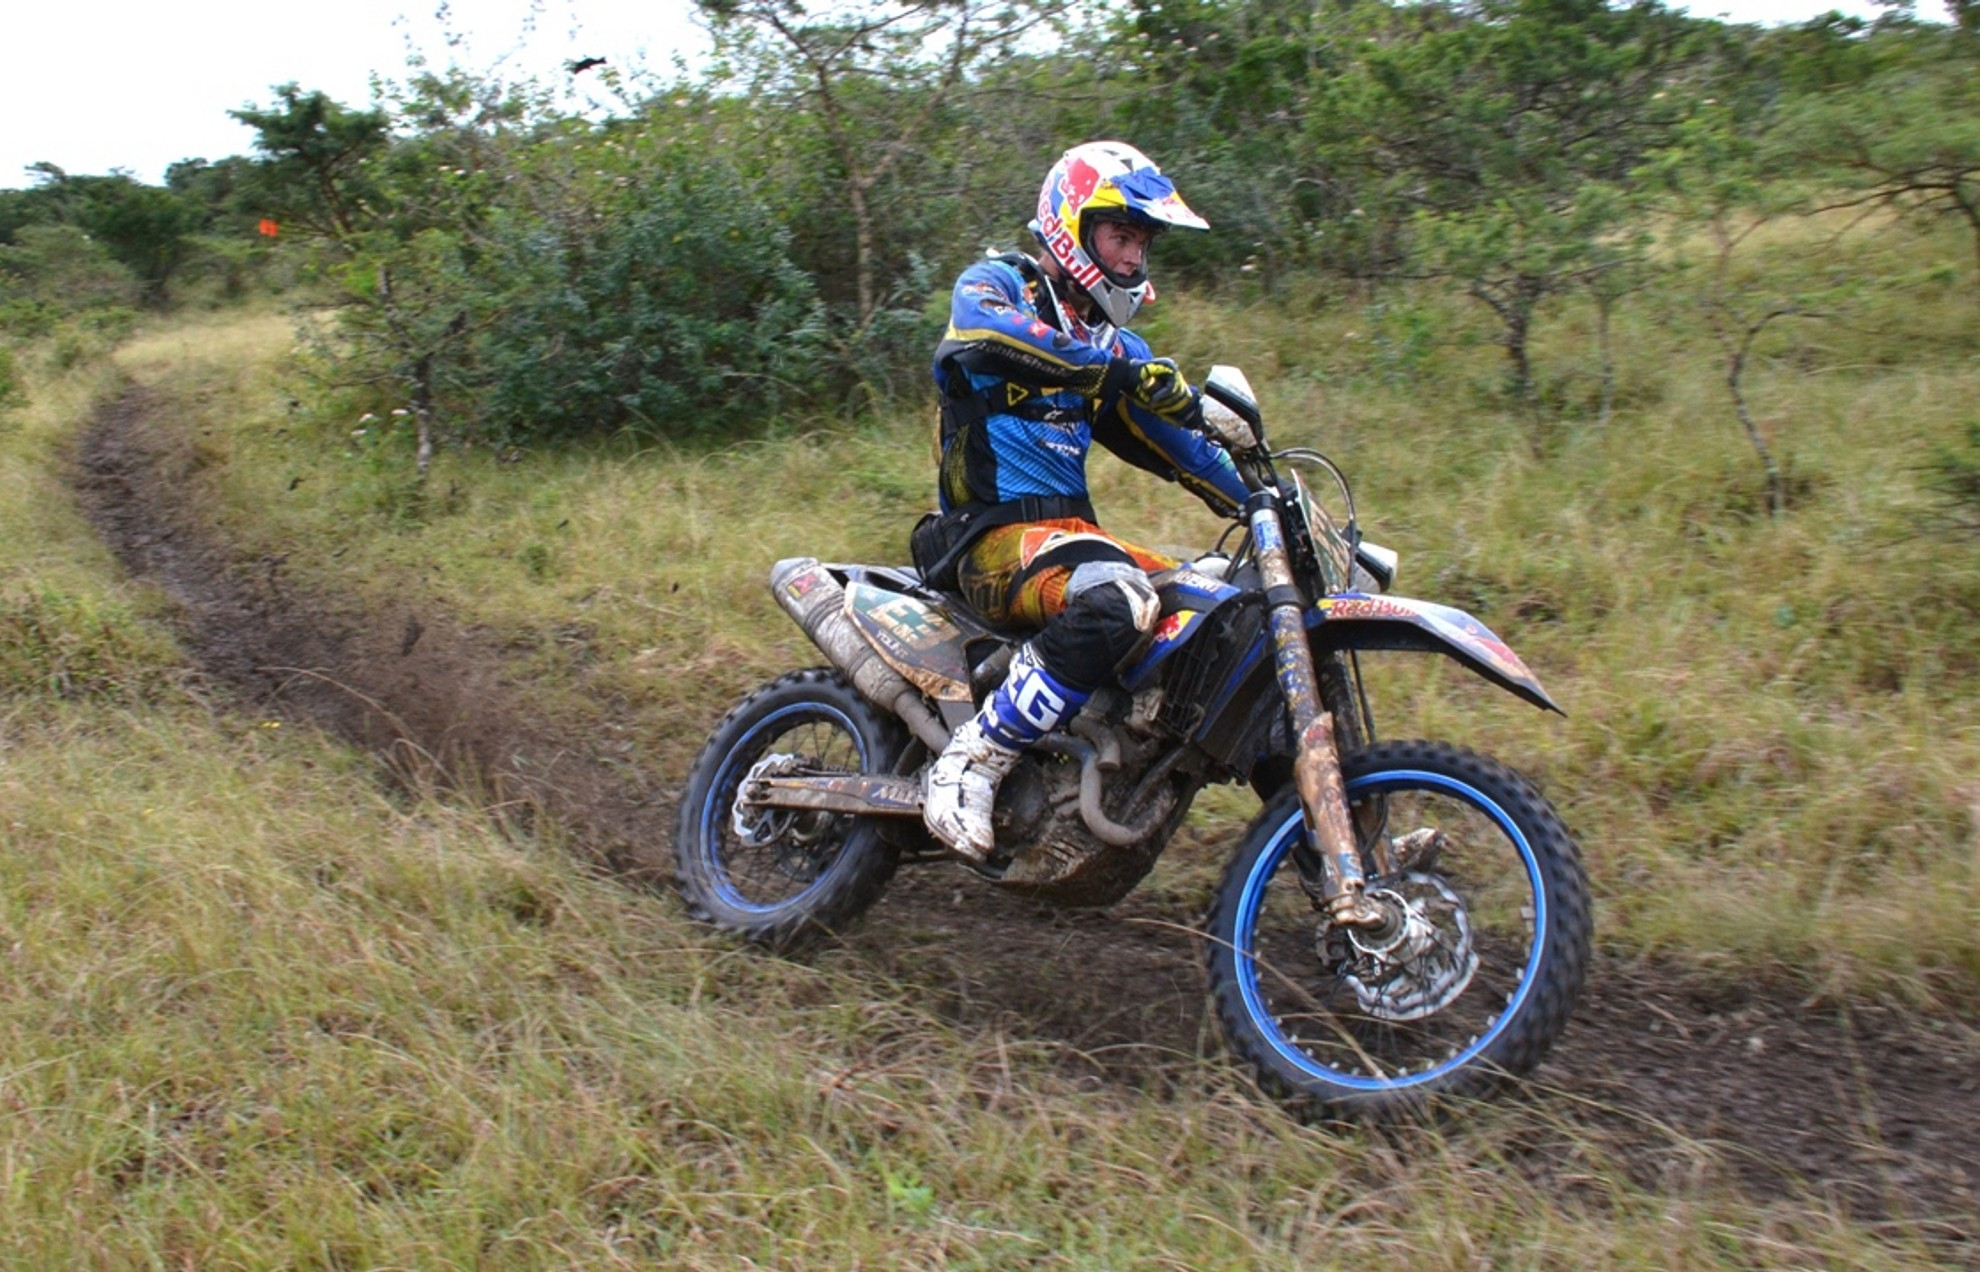 South Africa Motorcycles Enduro